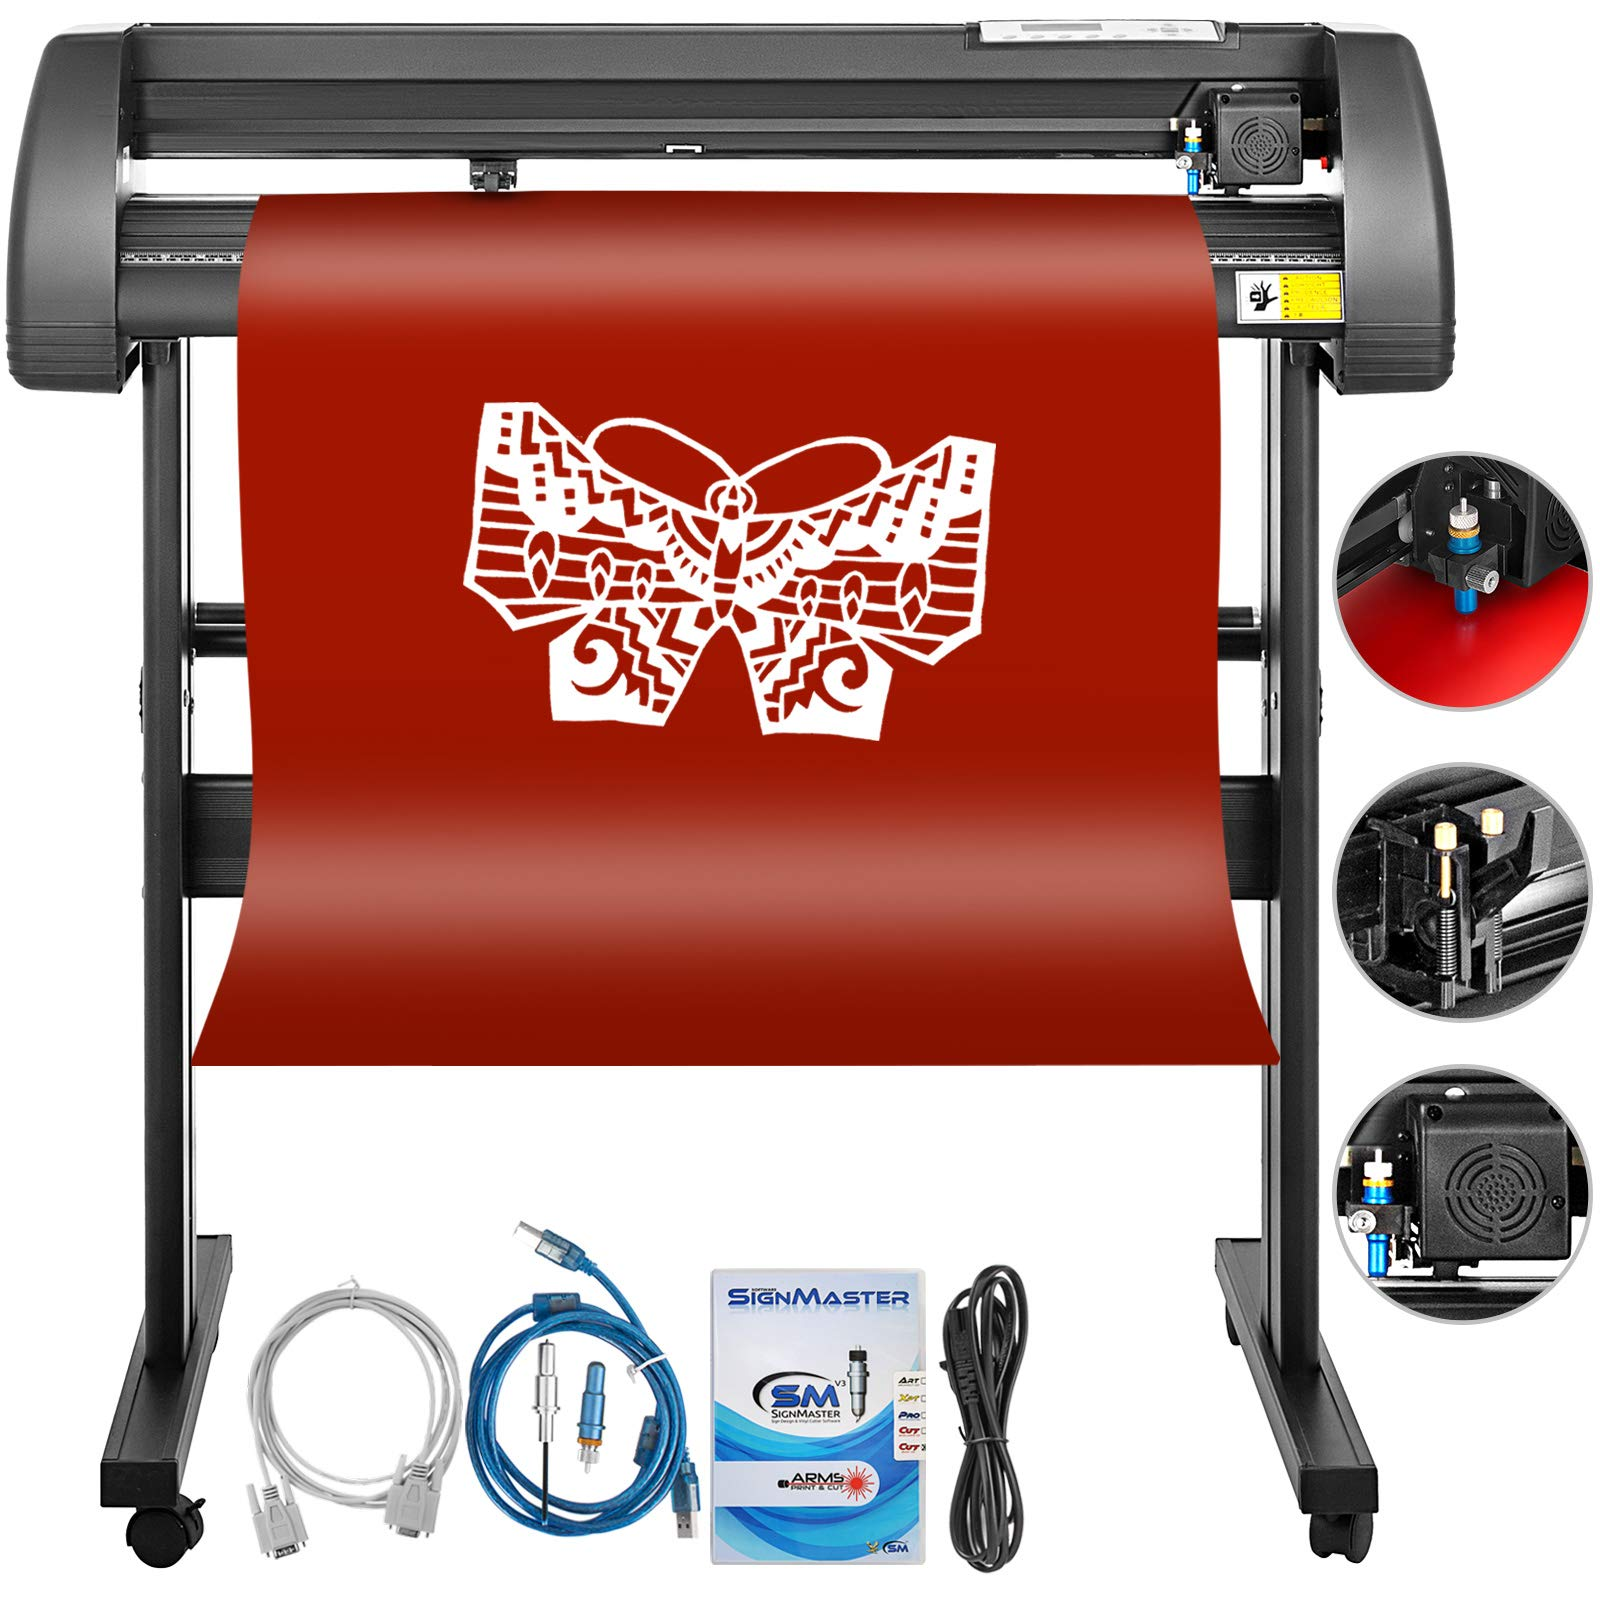 Mophorn Vinyl Cutter 34 Inch Vinyl Cutter Machine 870mm Vinyl Printer Cutter Machine LCD Display Vinyl Plotter Cutter Machine Signmaster Software Sign Making Machine with Stand